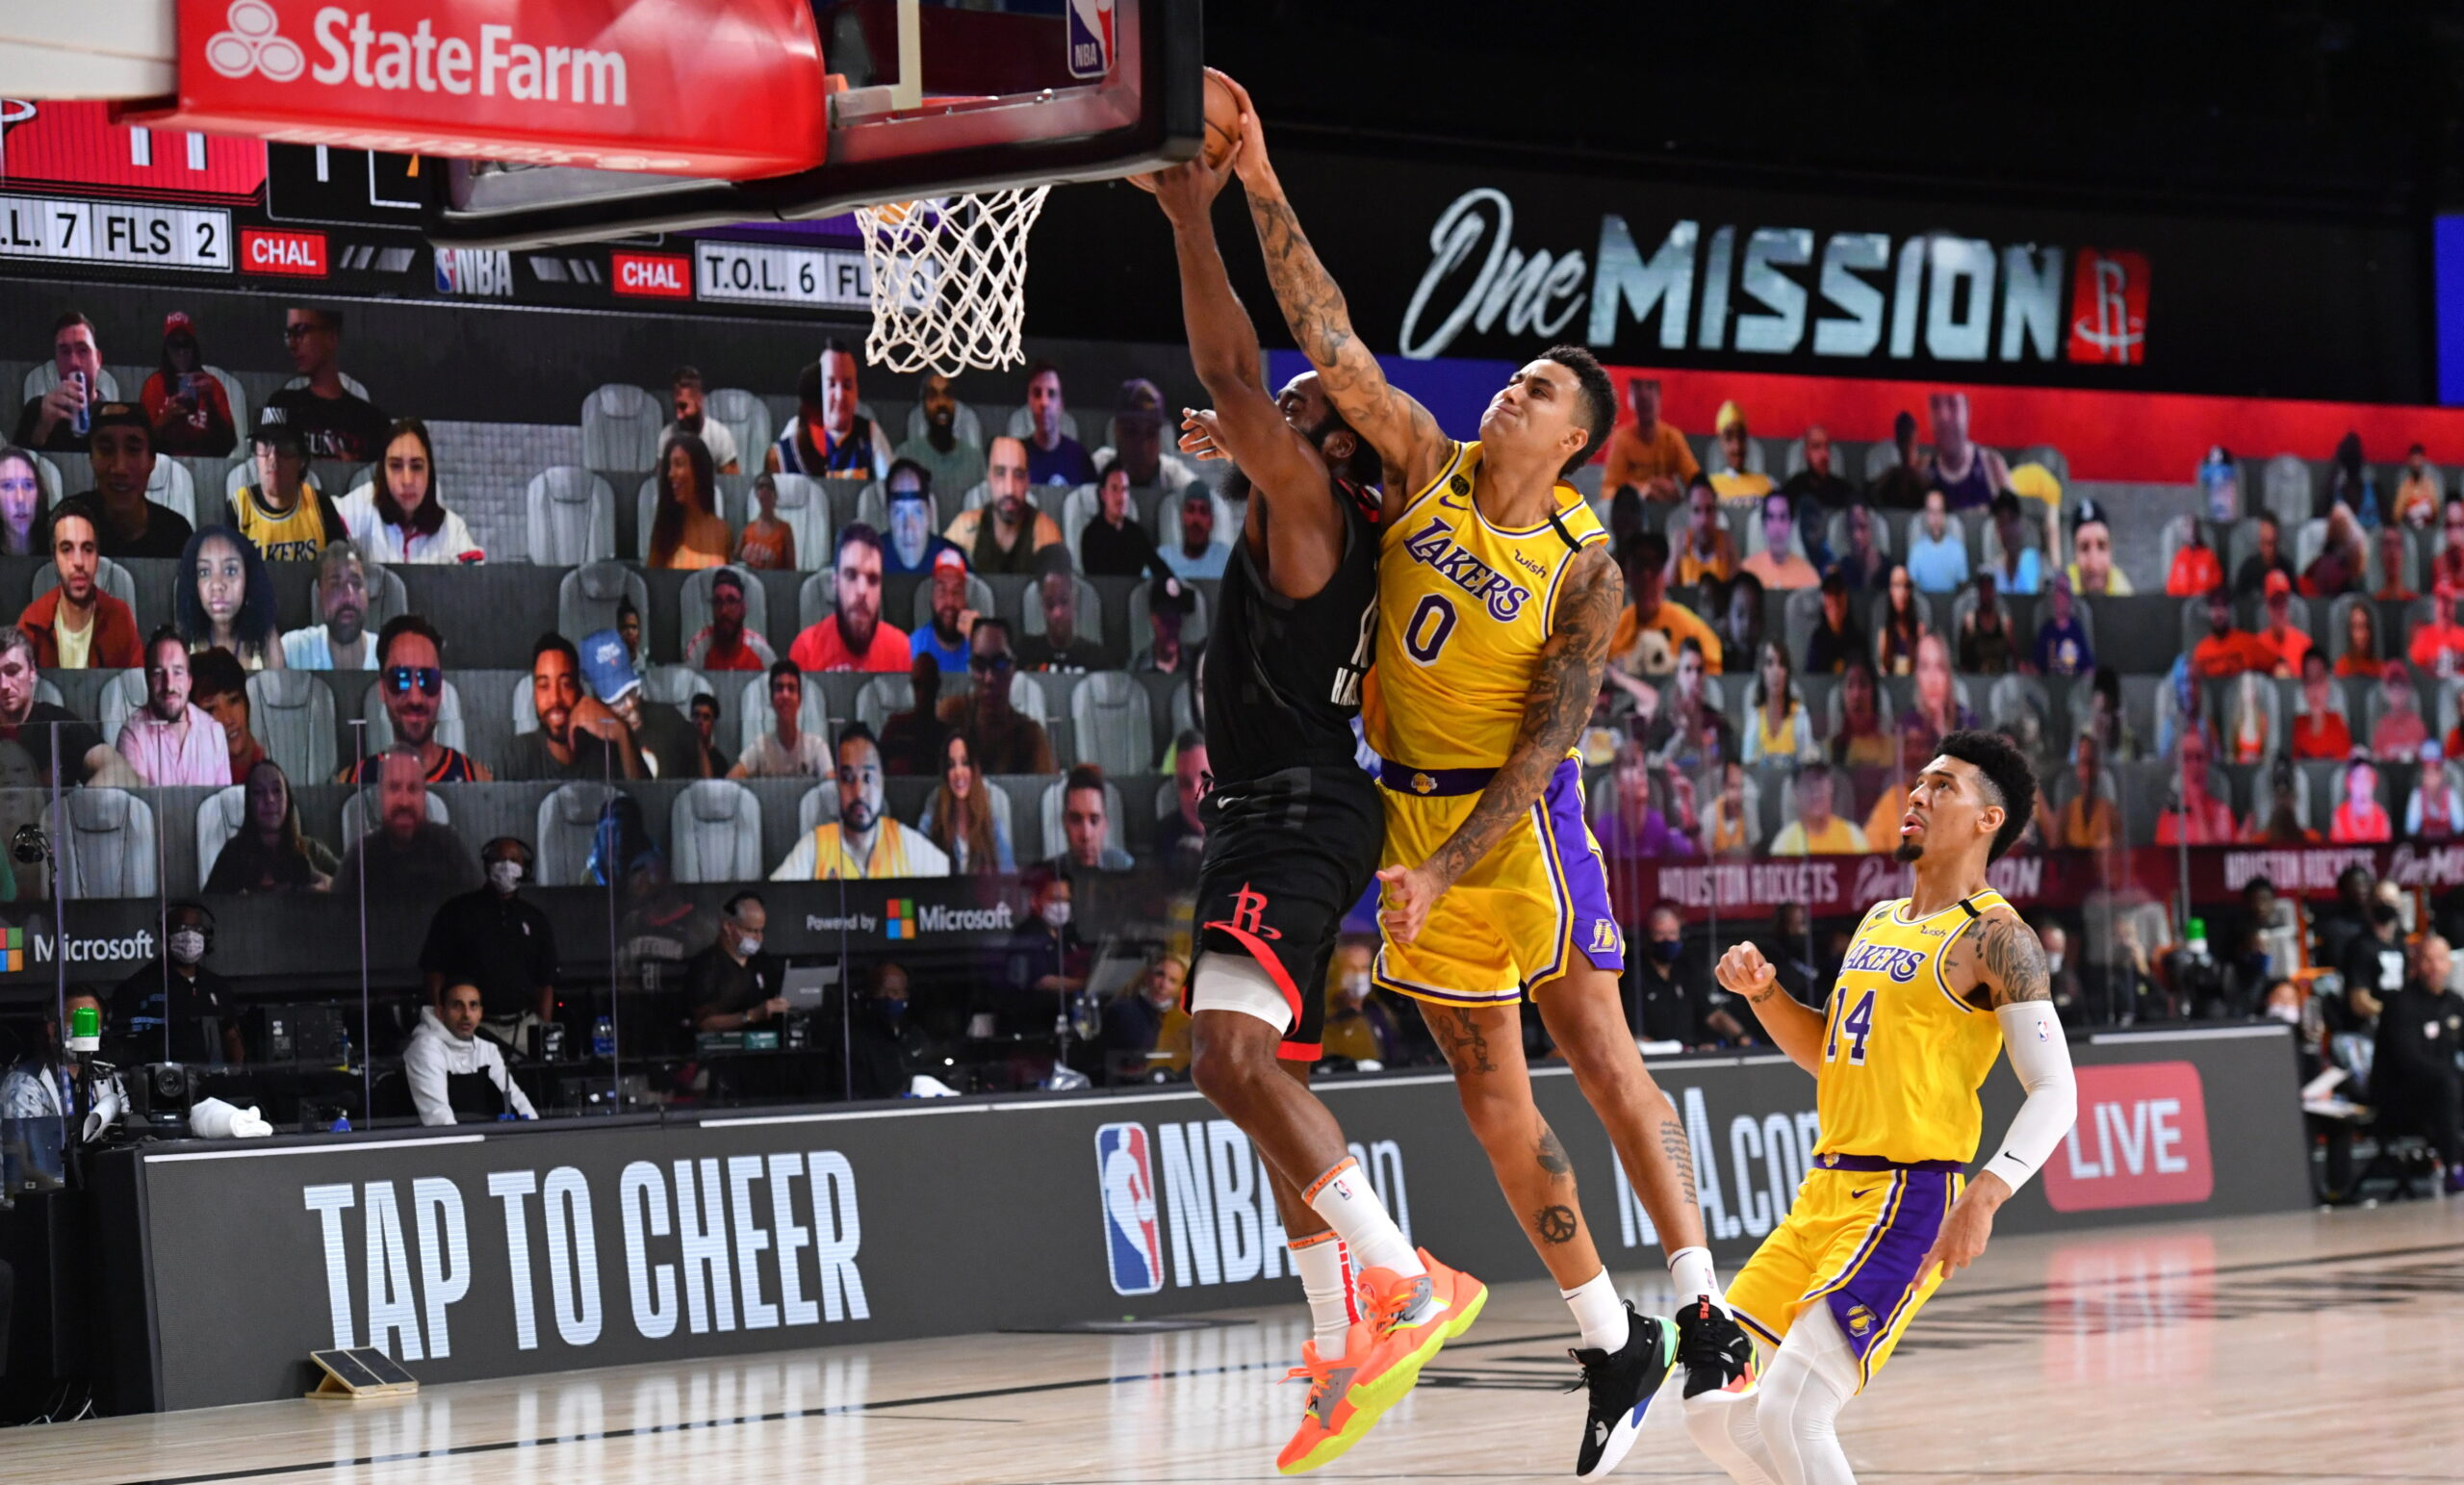 Kyle Kuzma #0 of the Los Angeles Lakers blocks shot taken by James Harden #13 of the Houston Rockets on August 6, 2020